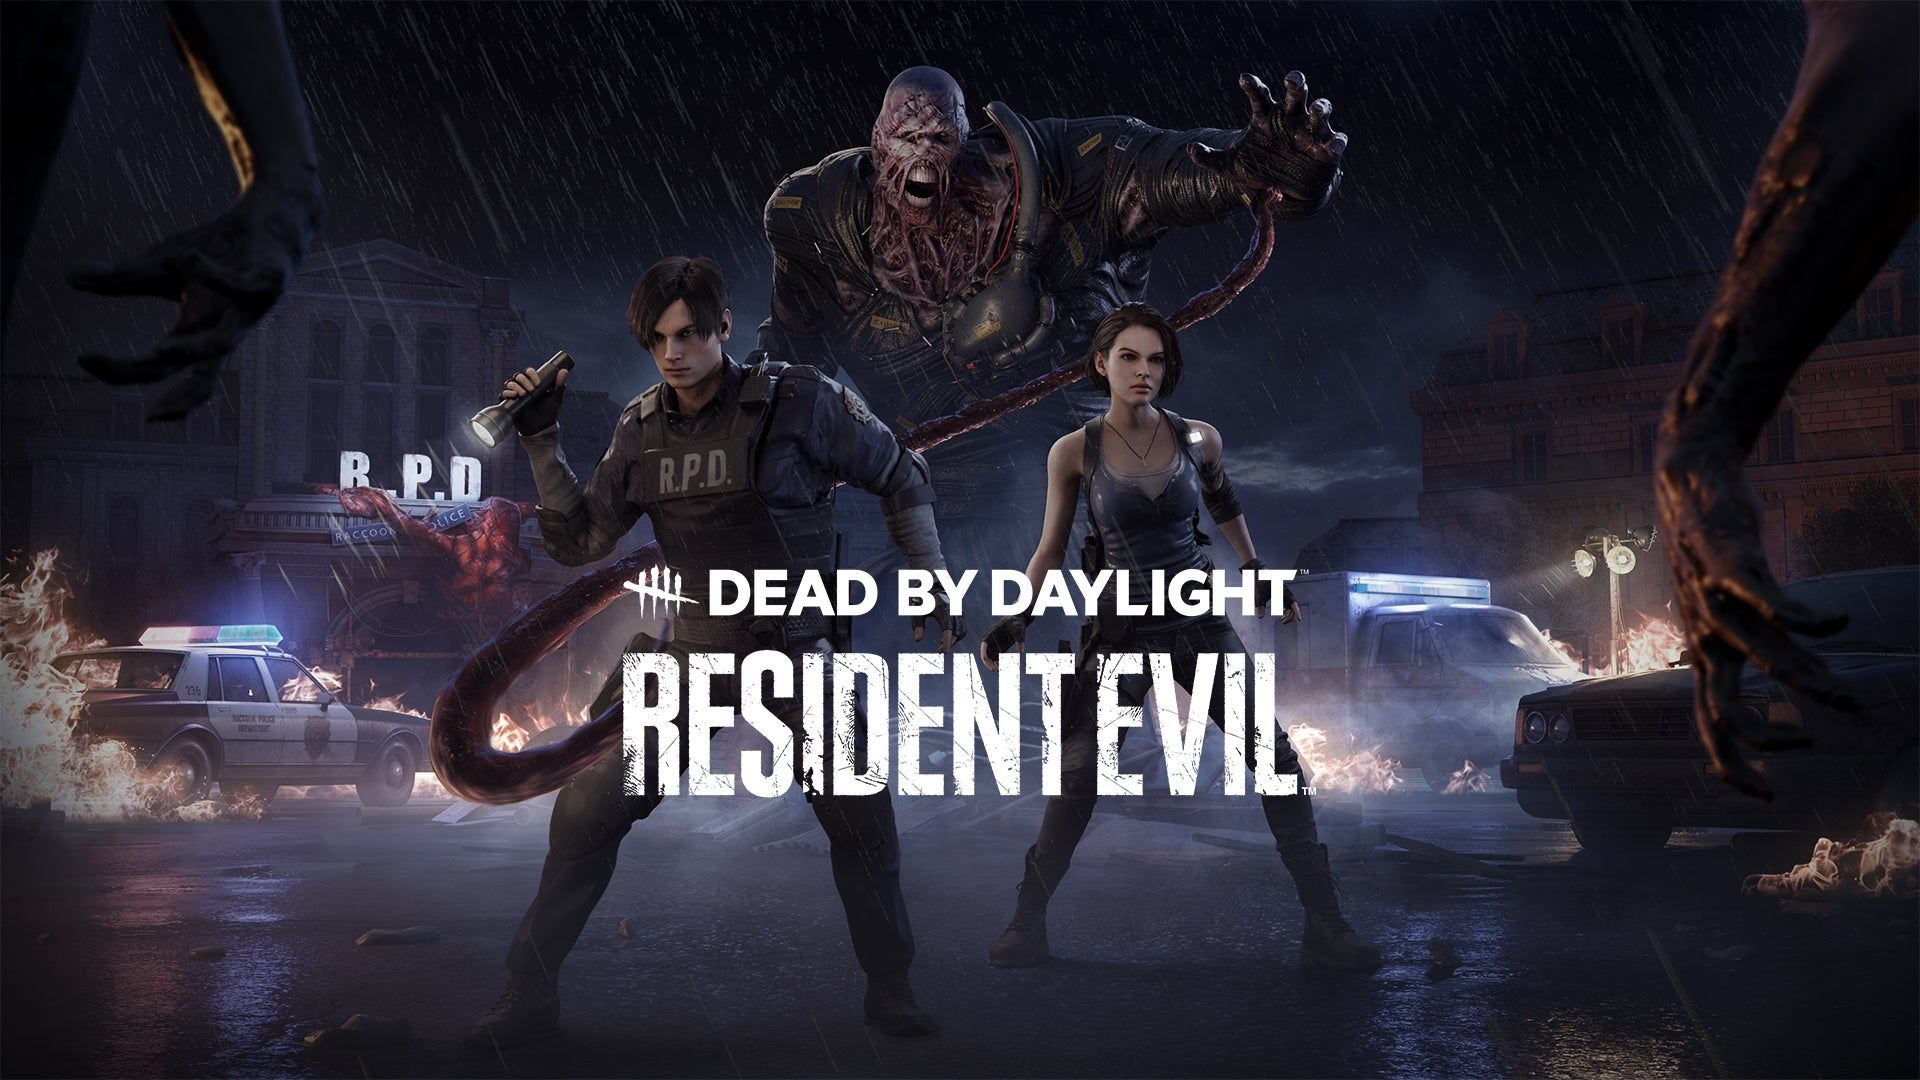 /dead-by-daylight-new-killer-resident-evil-crossover-details-tr1235l3 feature image